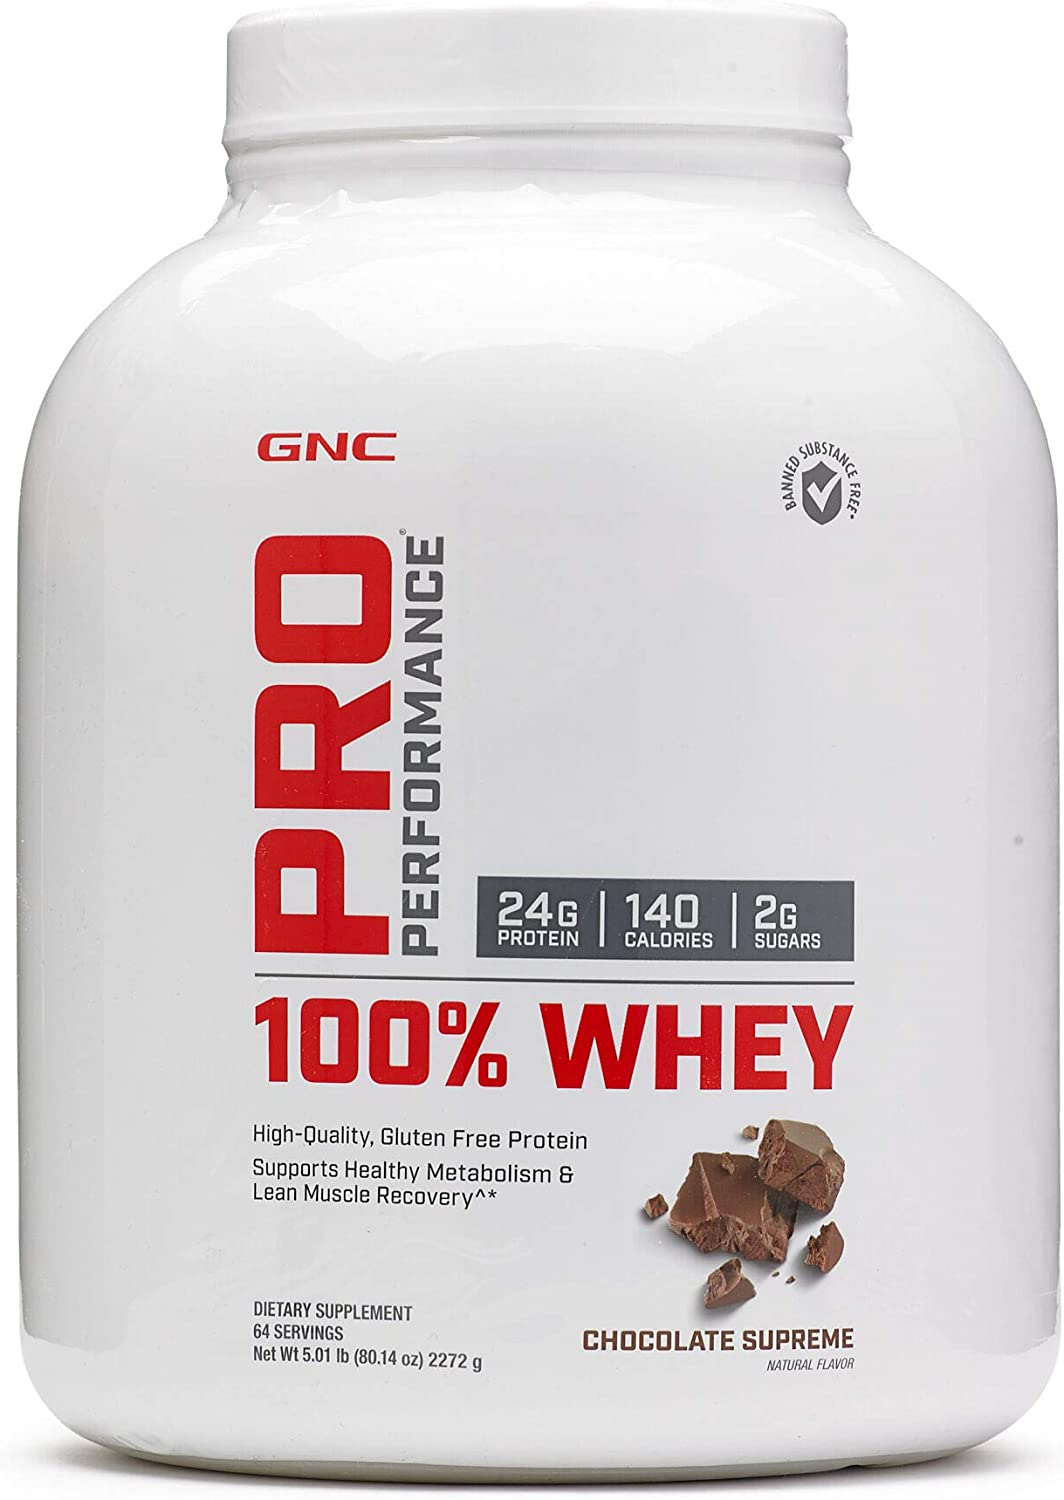 GNC Pro Performance 100 Whey Protein – Chocolate Supreme 5.01 lbs.